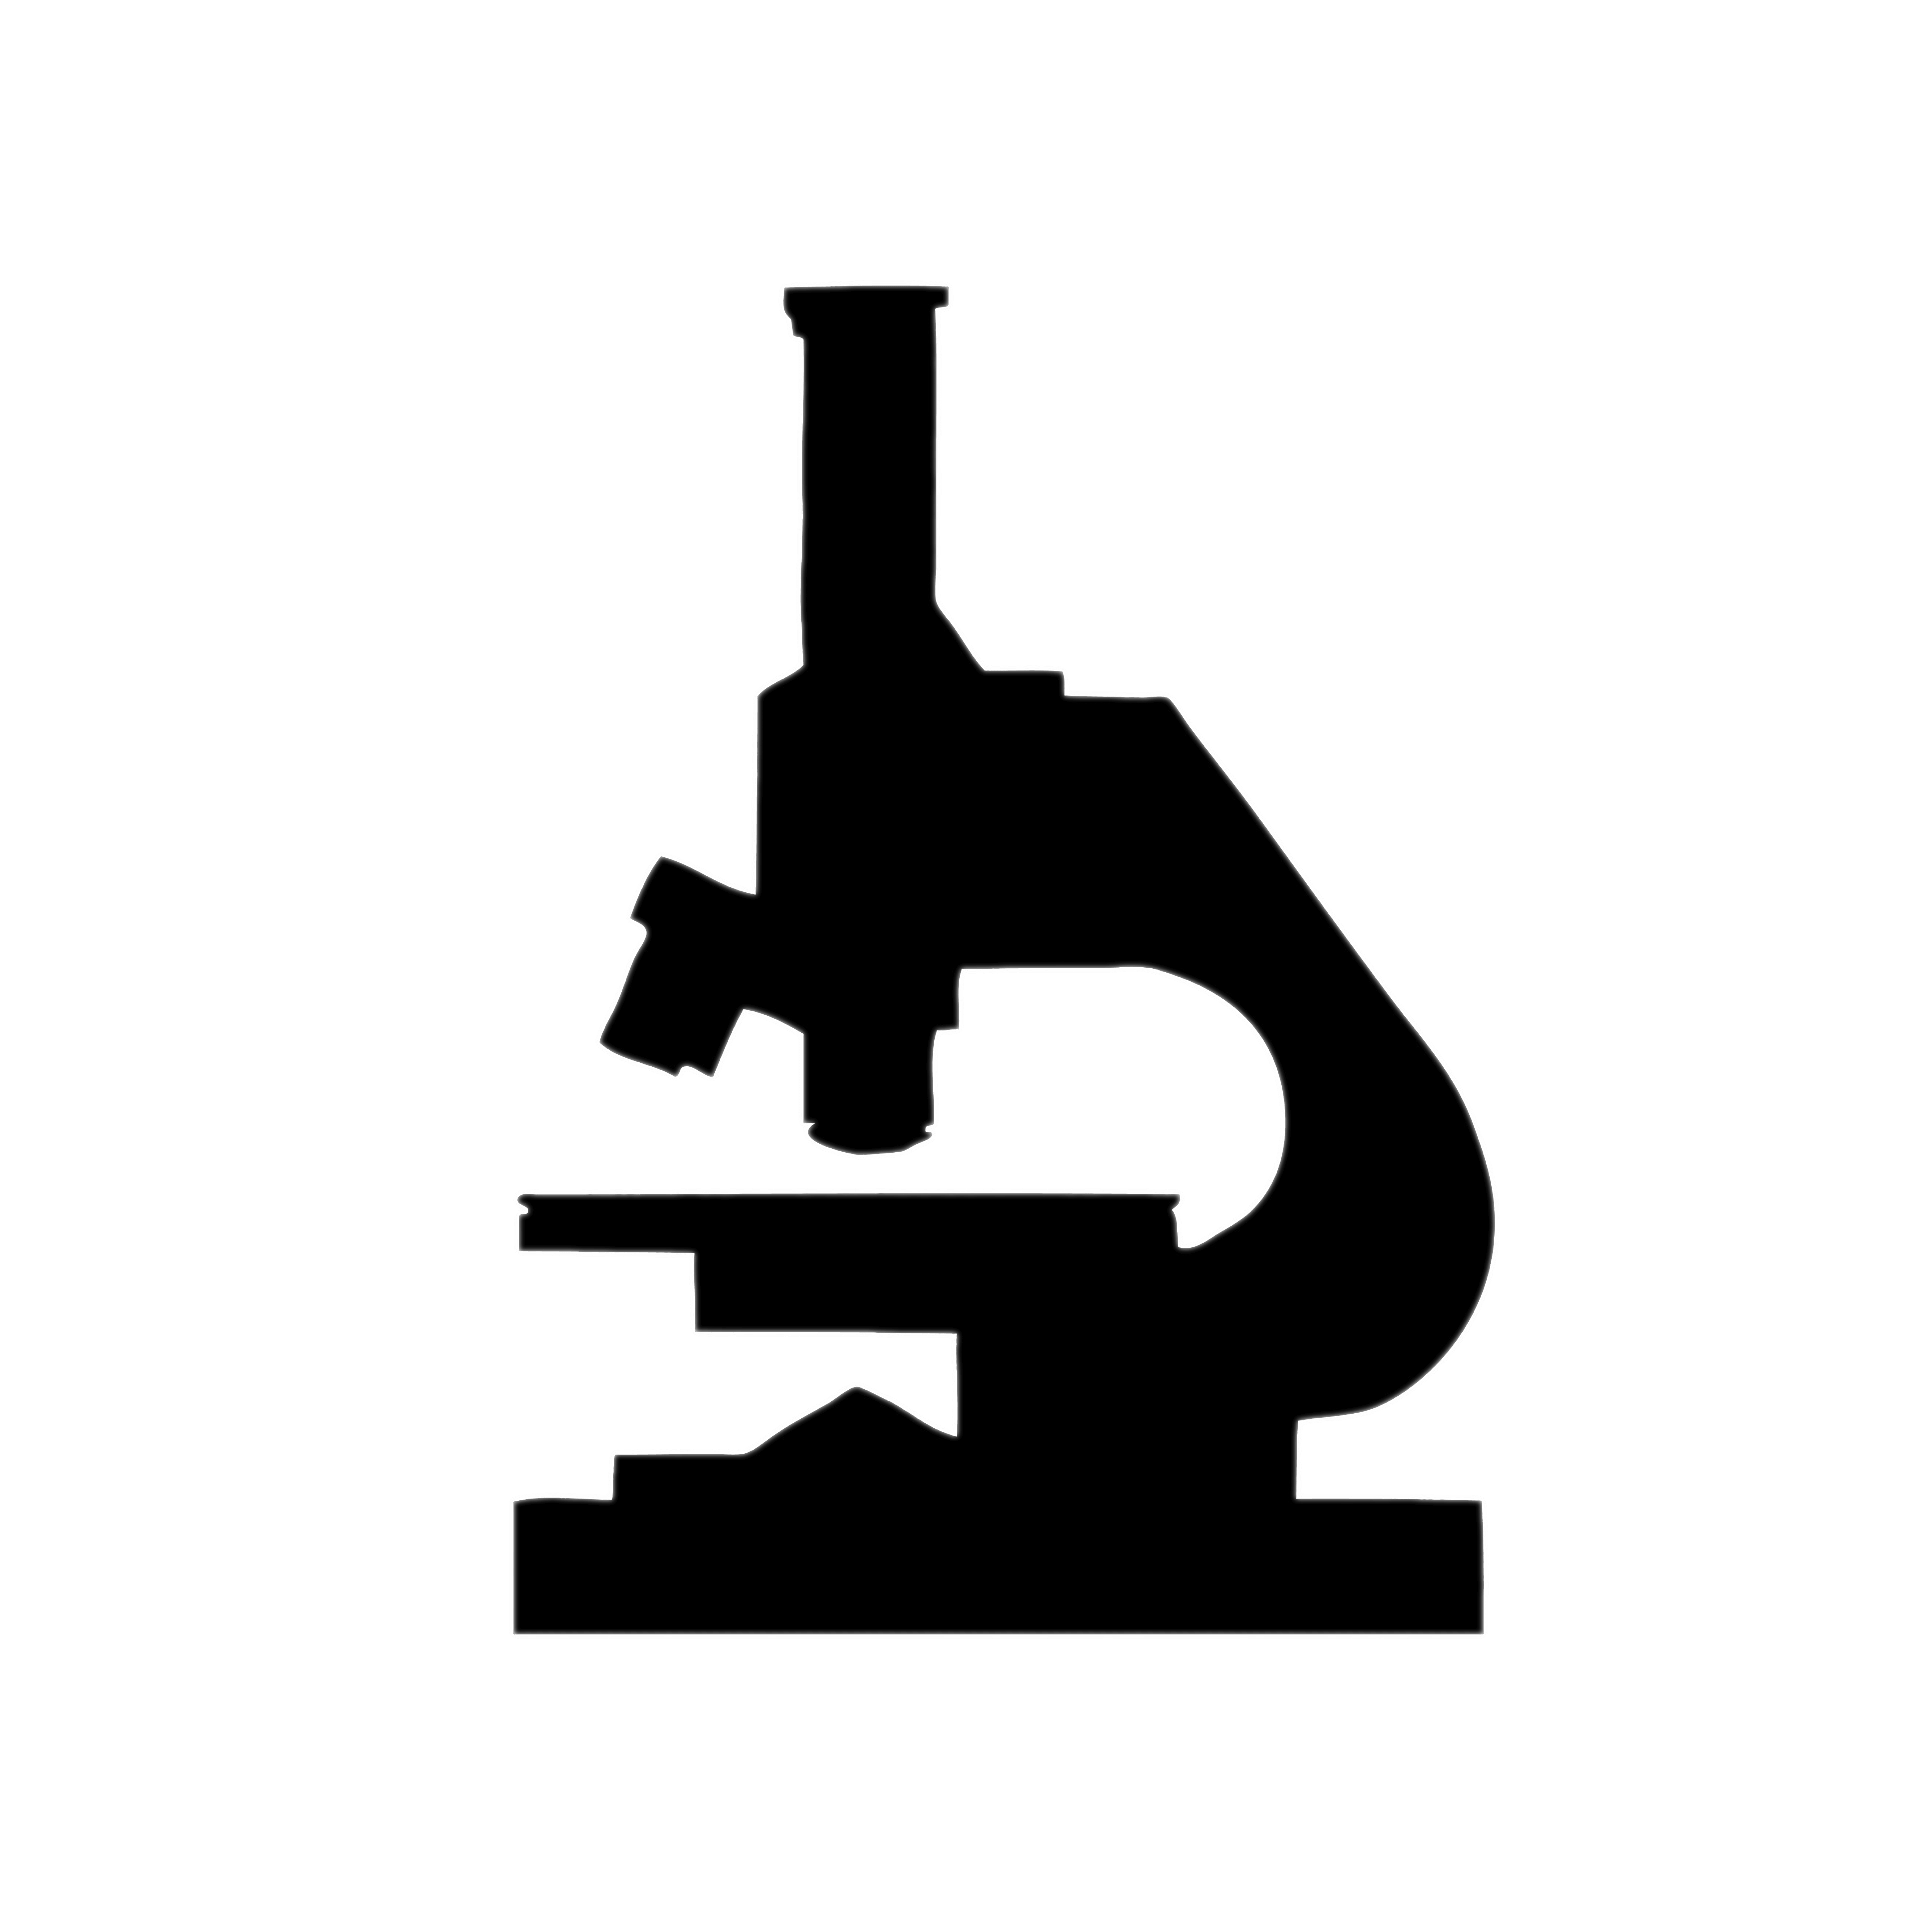 Microscope Silhouette Clipart transparent PNG.